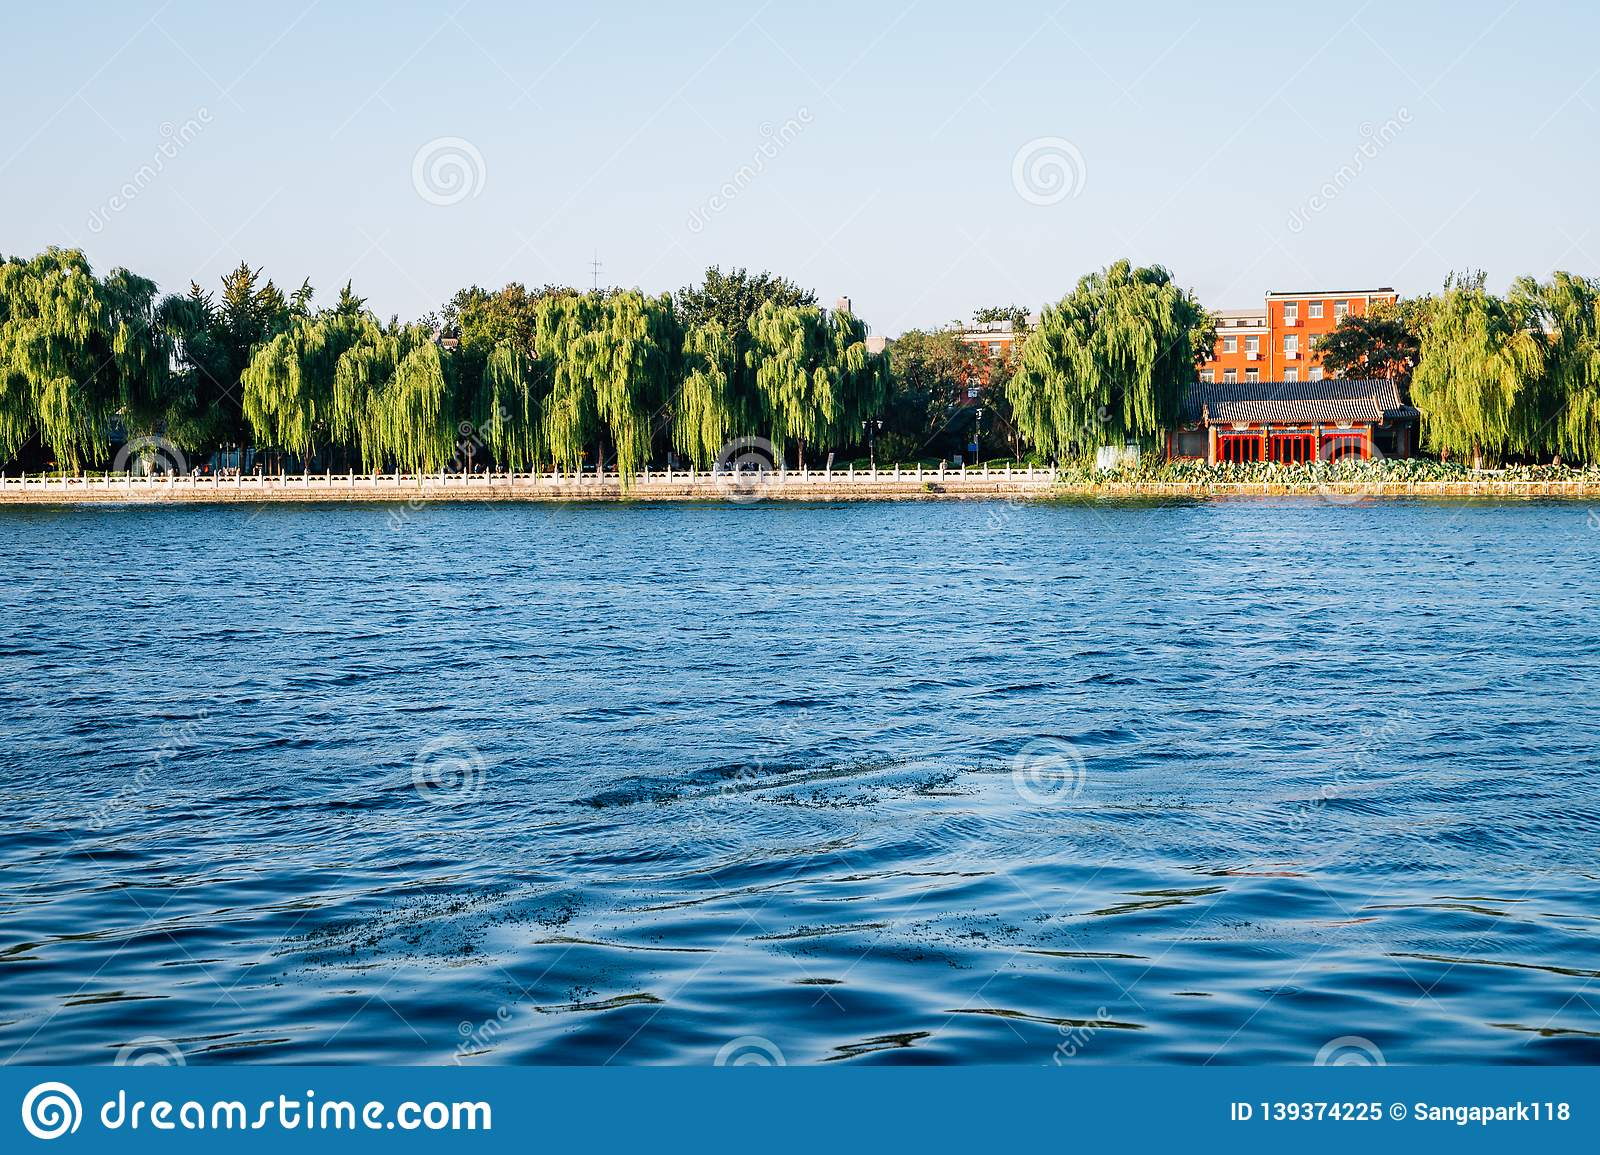 Shichahai Houhai lake and Chinese traditional pavilion in Beijing, China